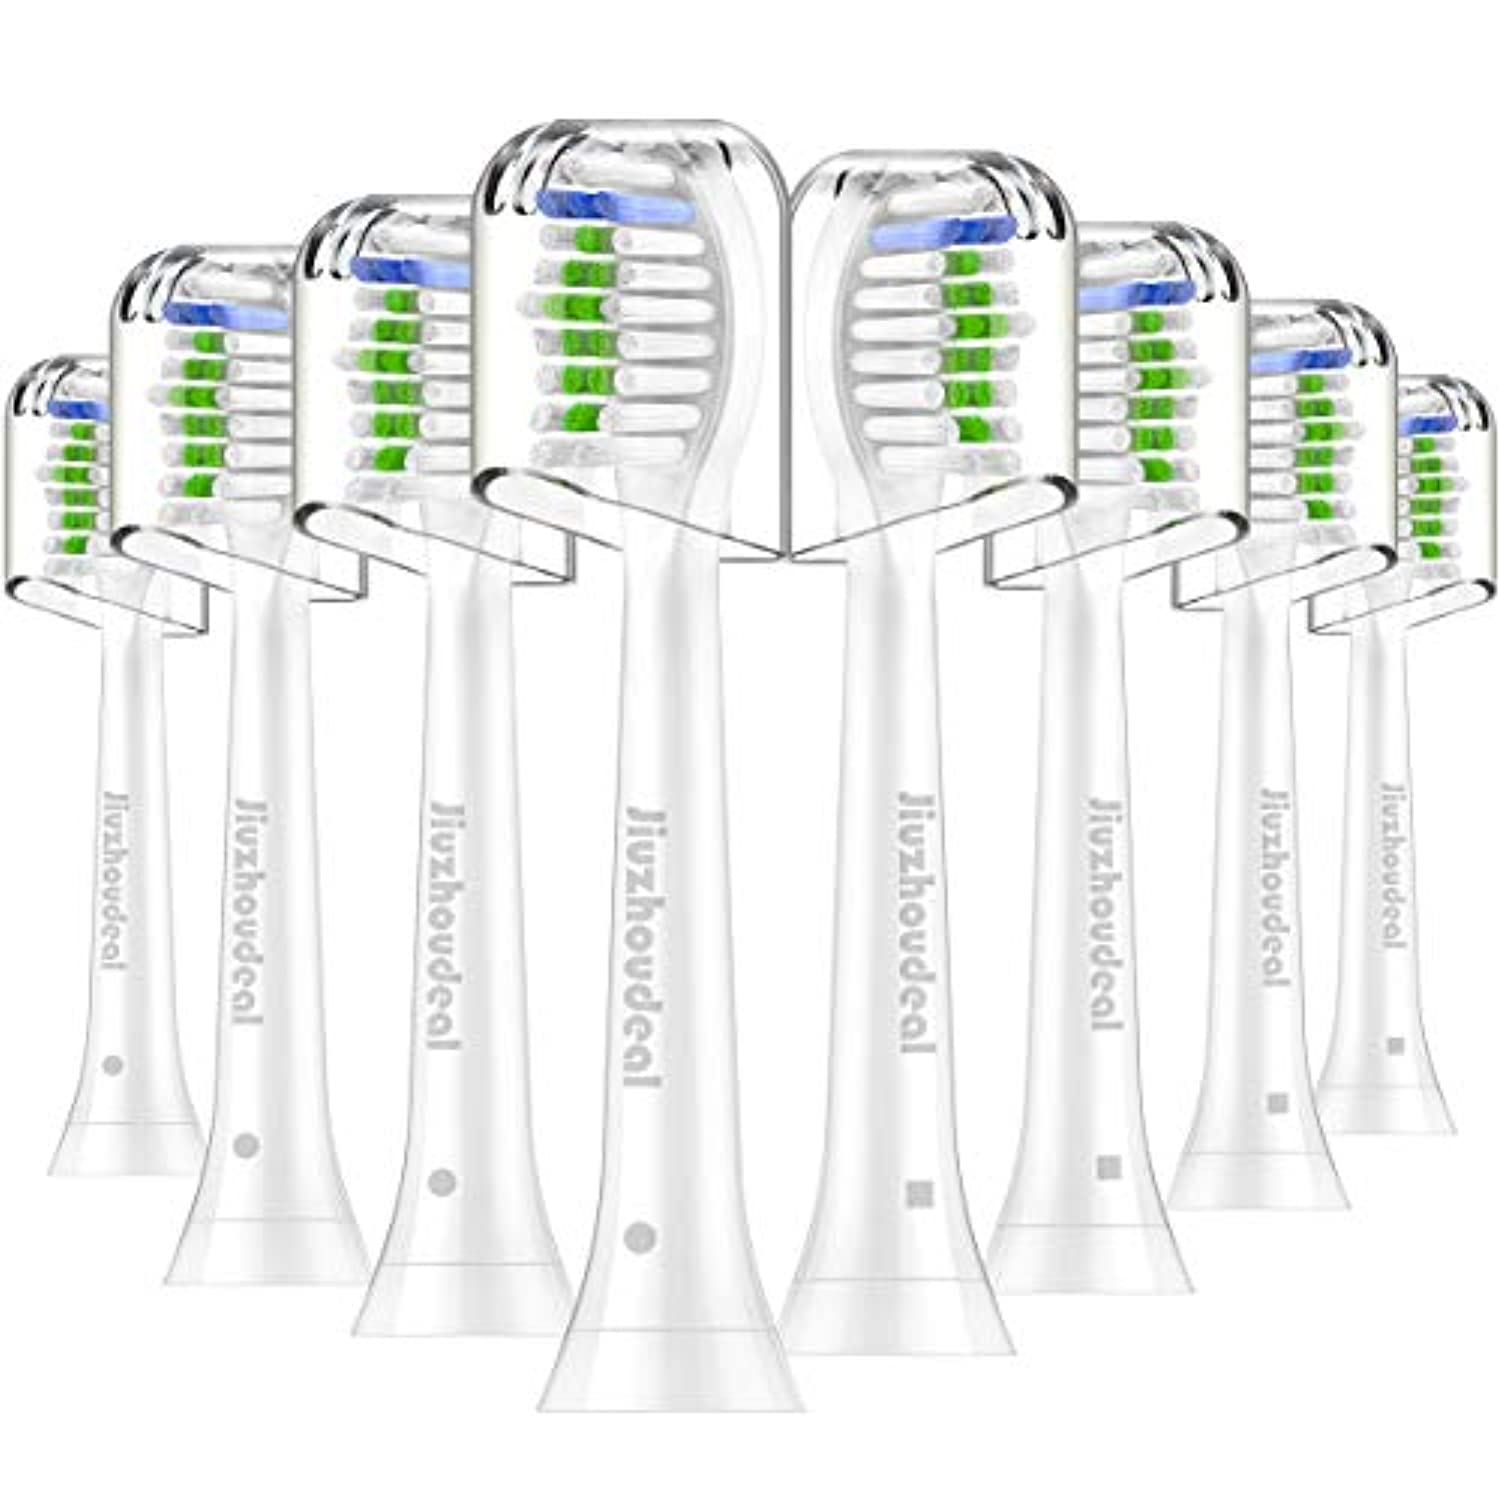 Replacement Brush Heads Compatible with Sonicare Electric Toothbrush DiamondClean, HealthyWhite, FlexCare, EasyClean, Essence+, PowerUp, 8 Pack by Jiuzhoudeal